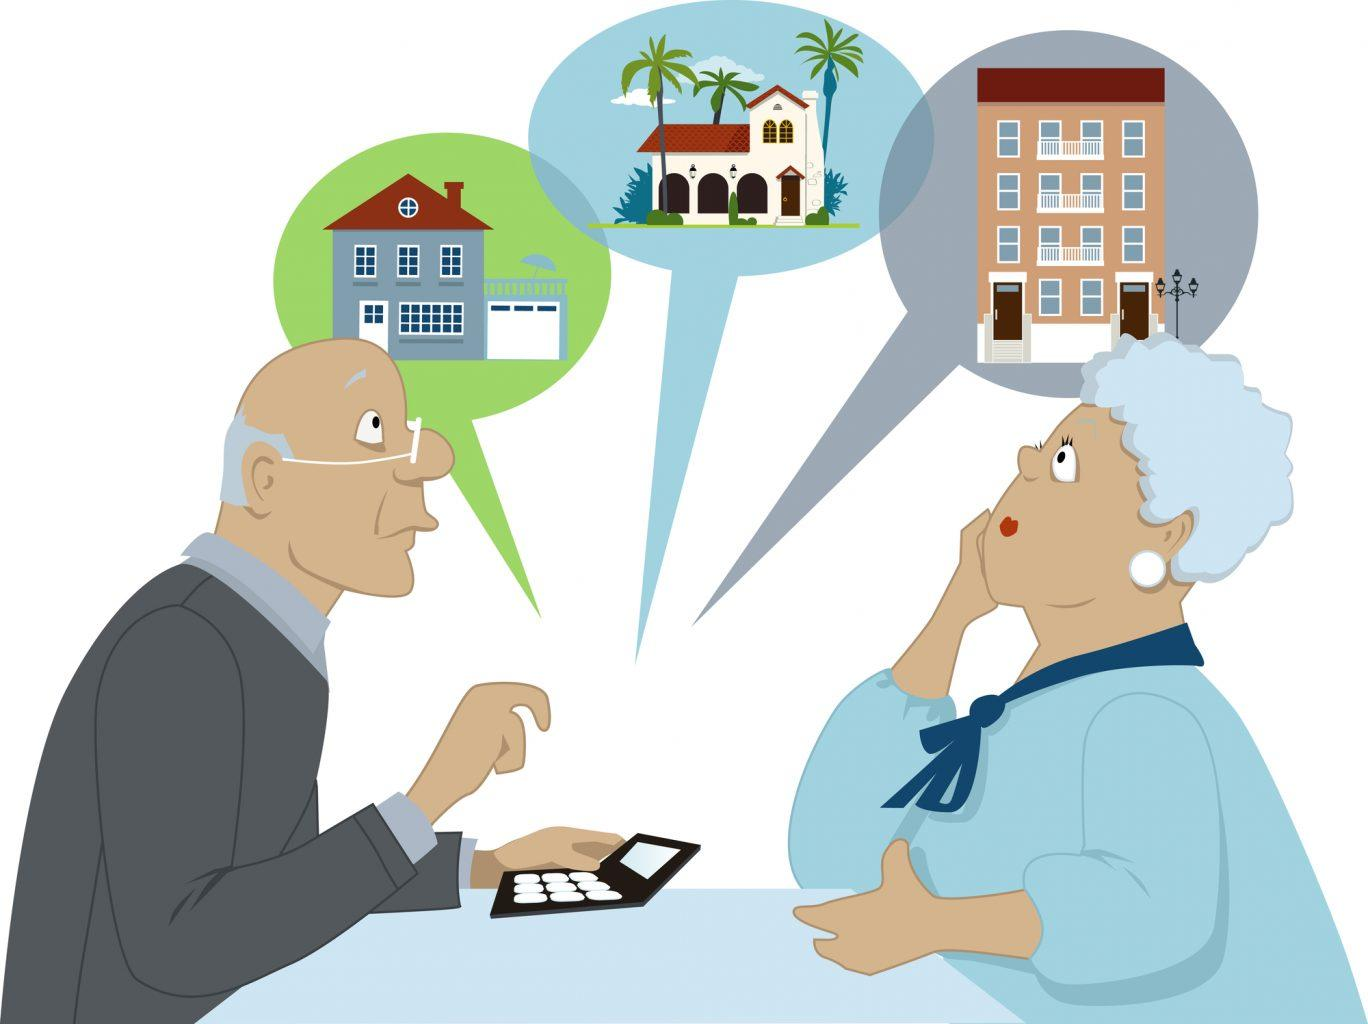 Are Your Parents Getting into Their Golden Years? Things to Look for in Senior Housing